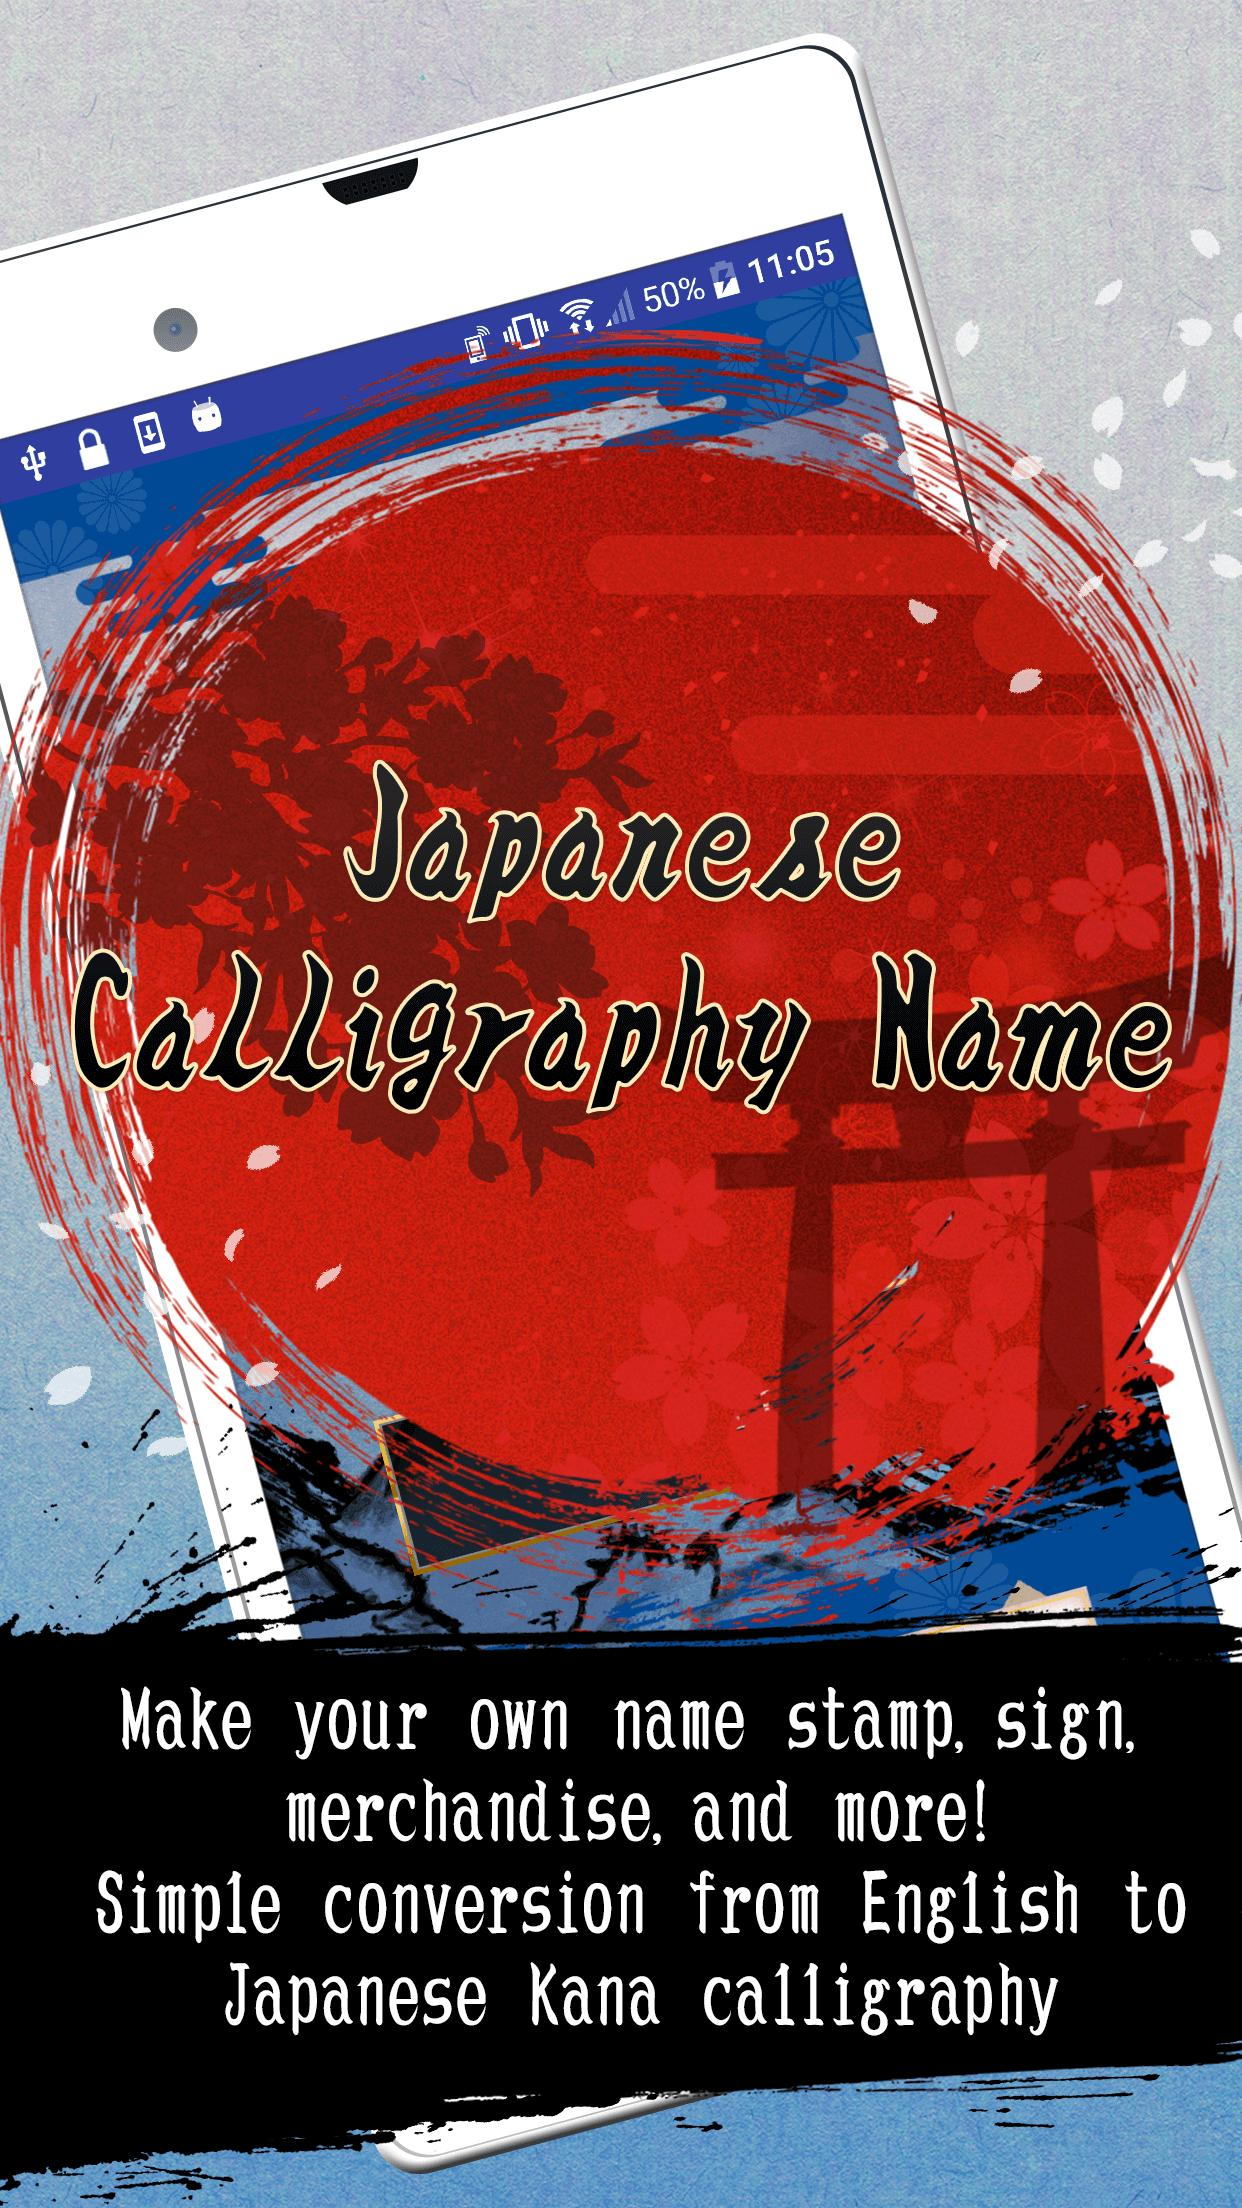 Japanese Calligraphy Name for Android - APK Download